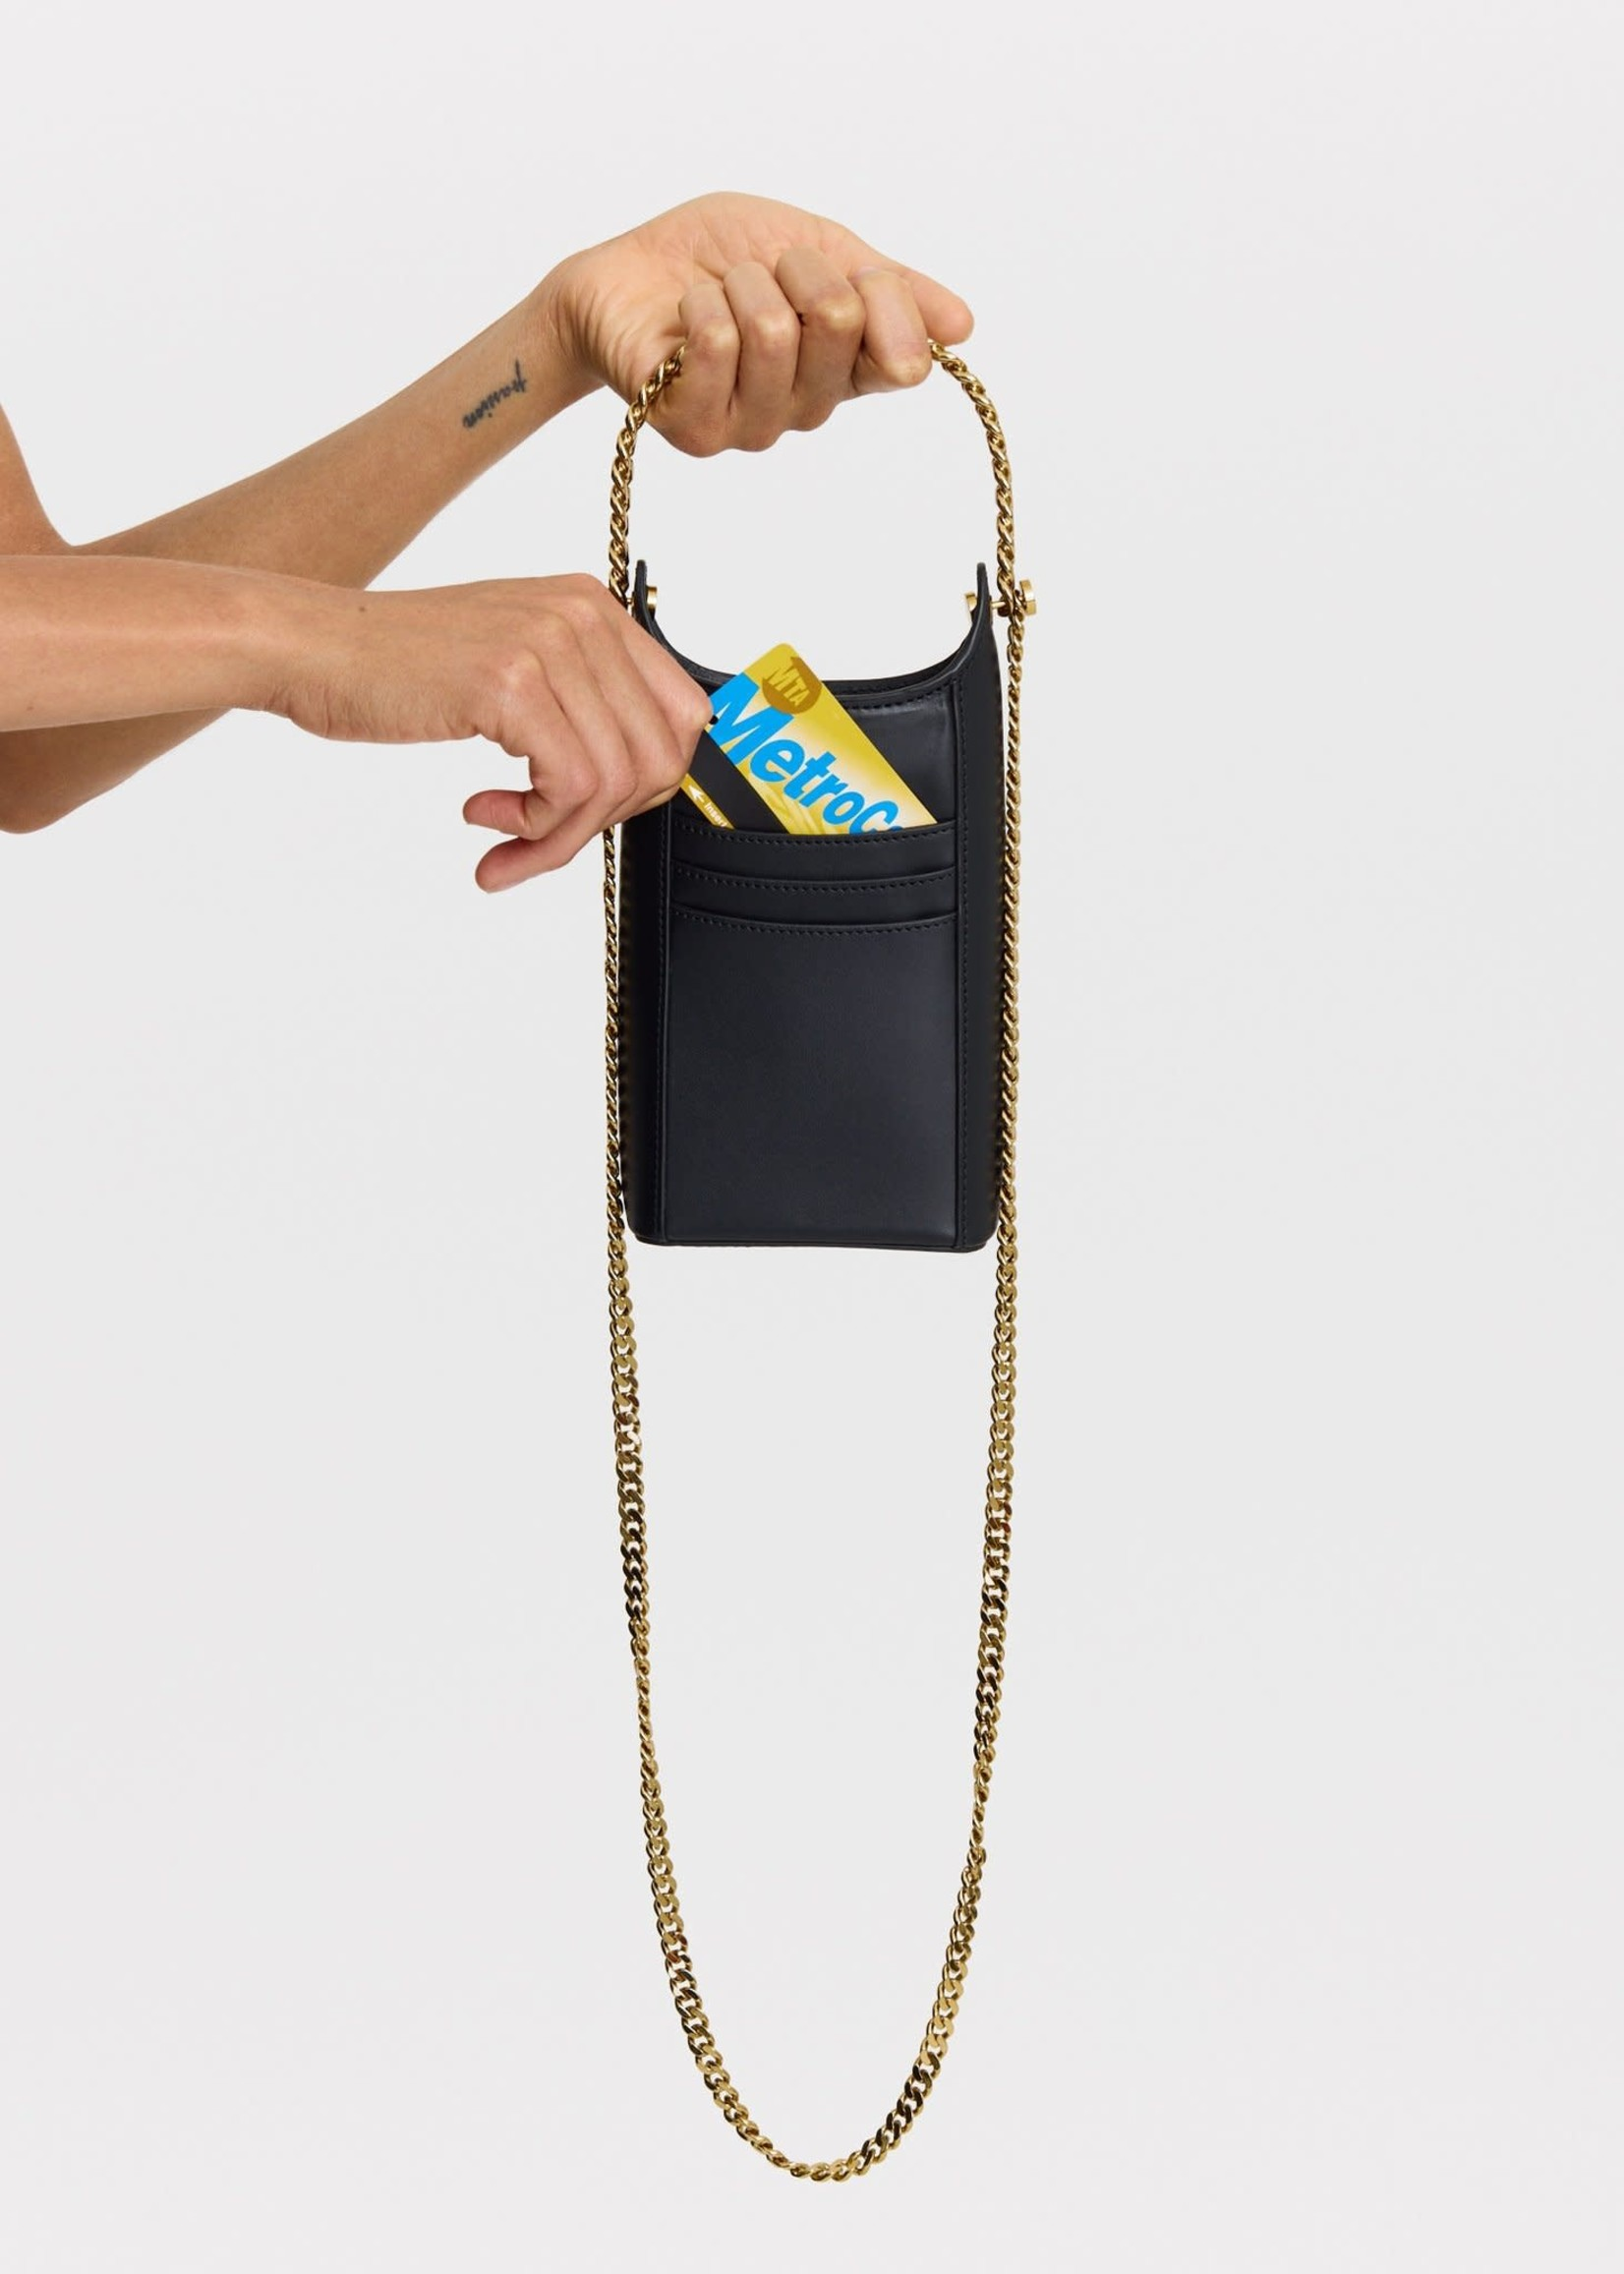 KARA Infinity Tech Pouch Black with Gold chain